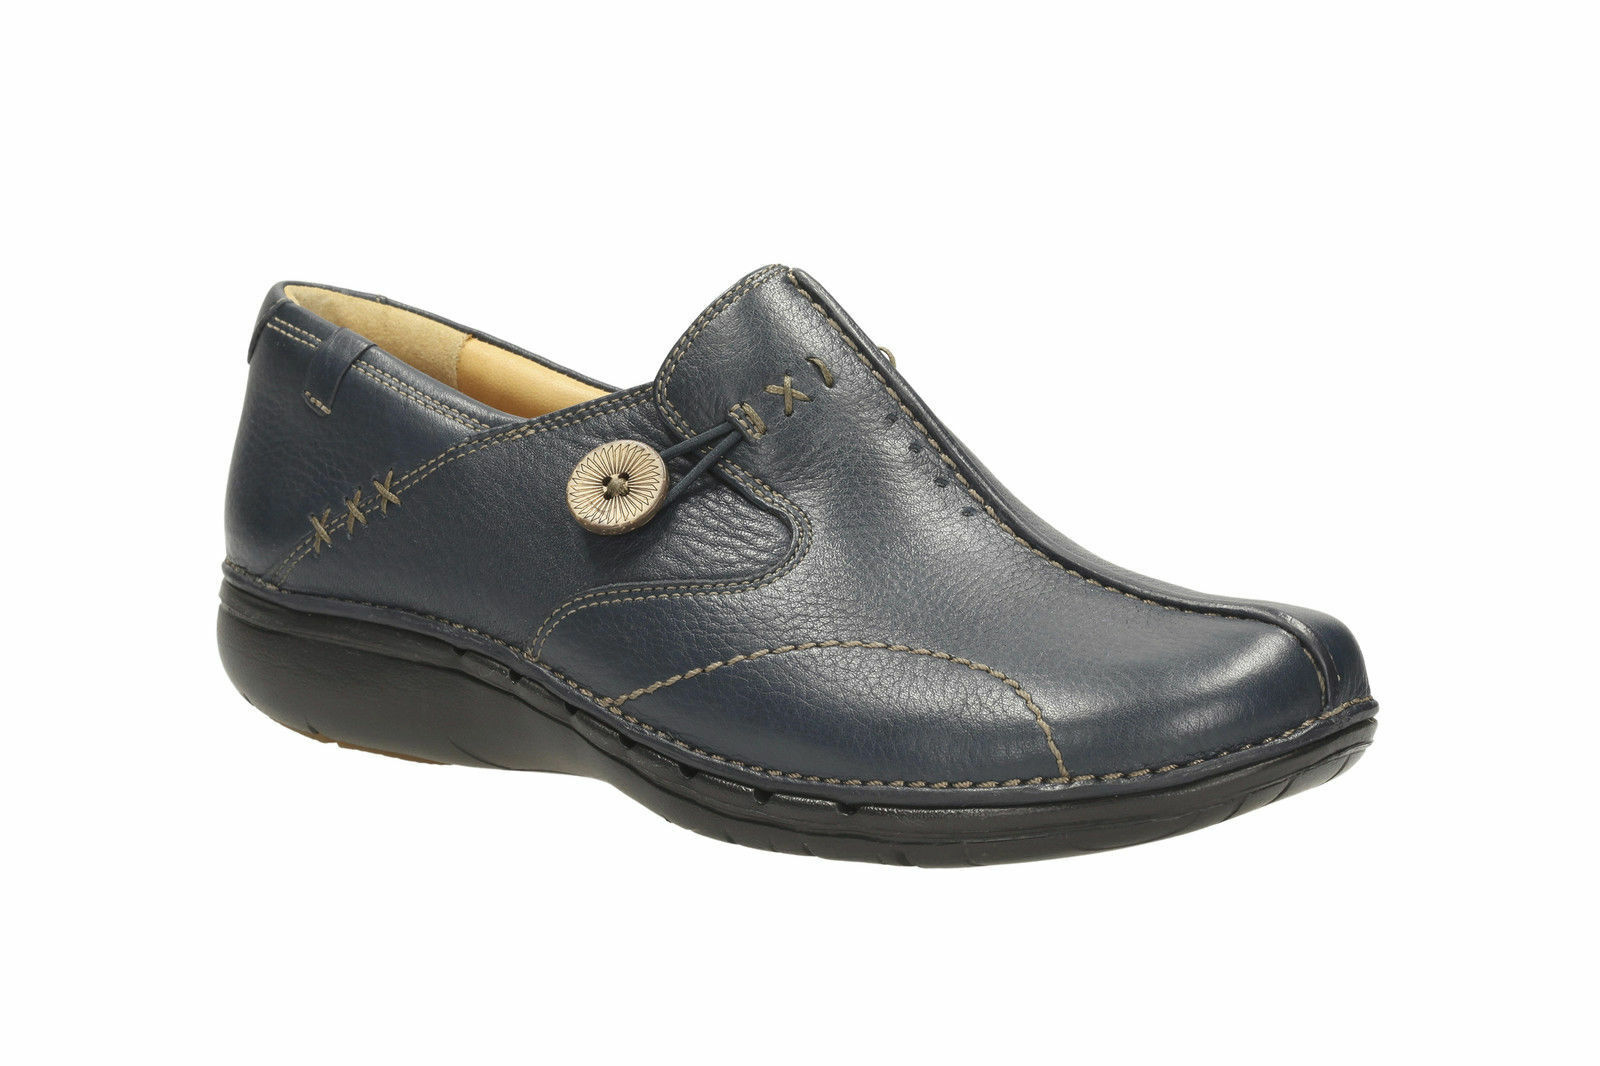 Clarks Un Loop Ladies Unstructured Navy Soft Leather Slip On shoes